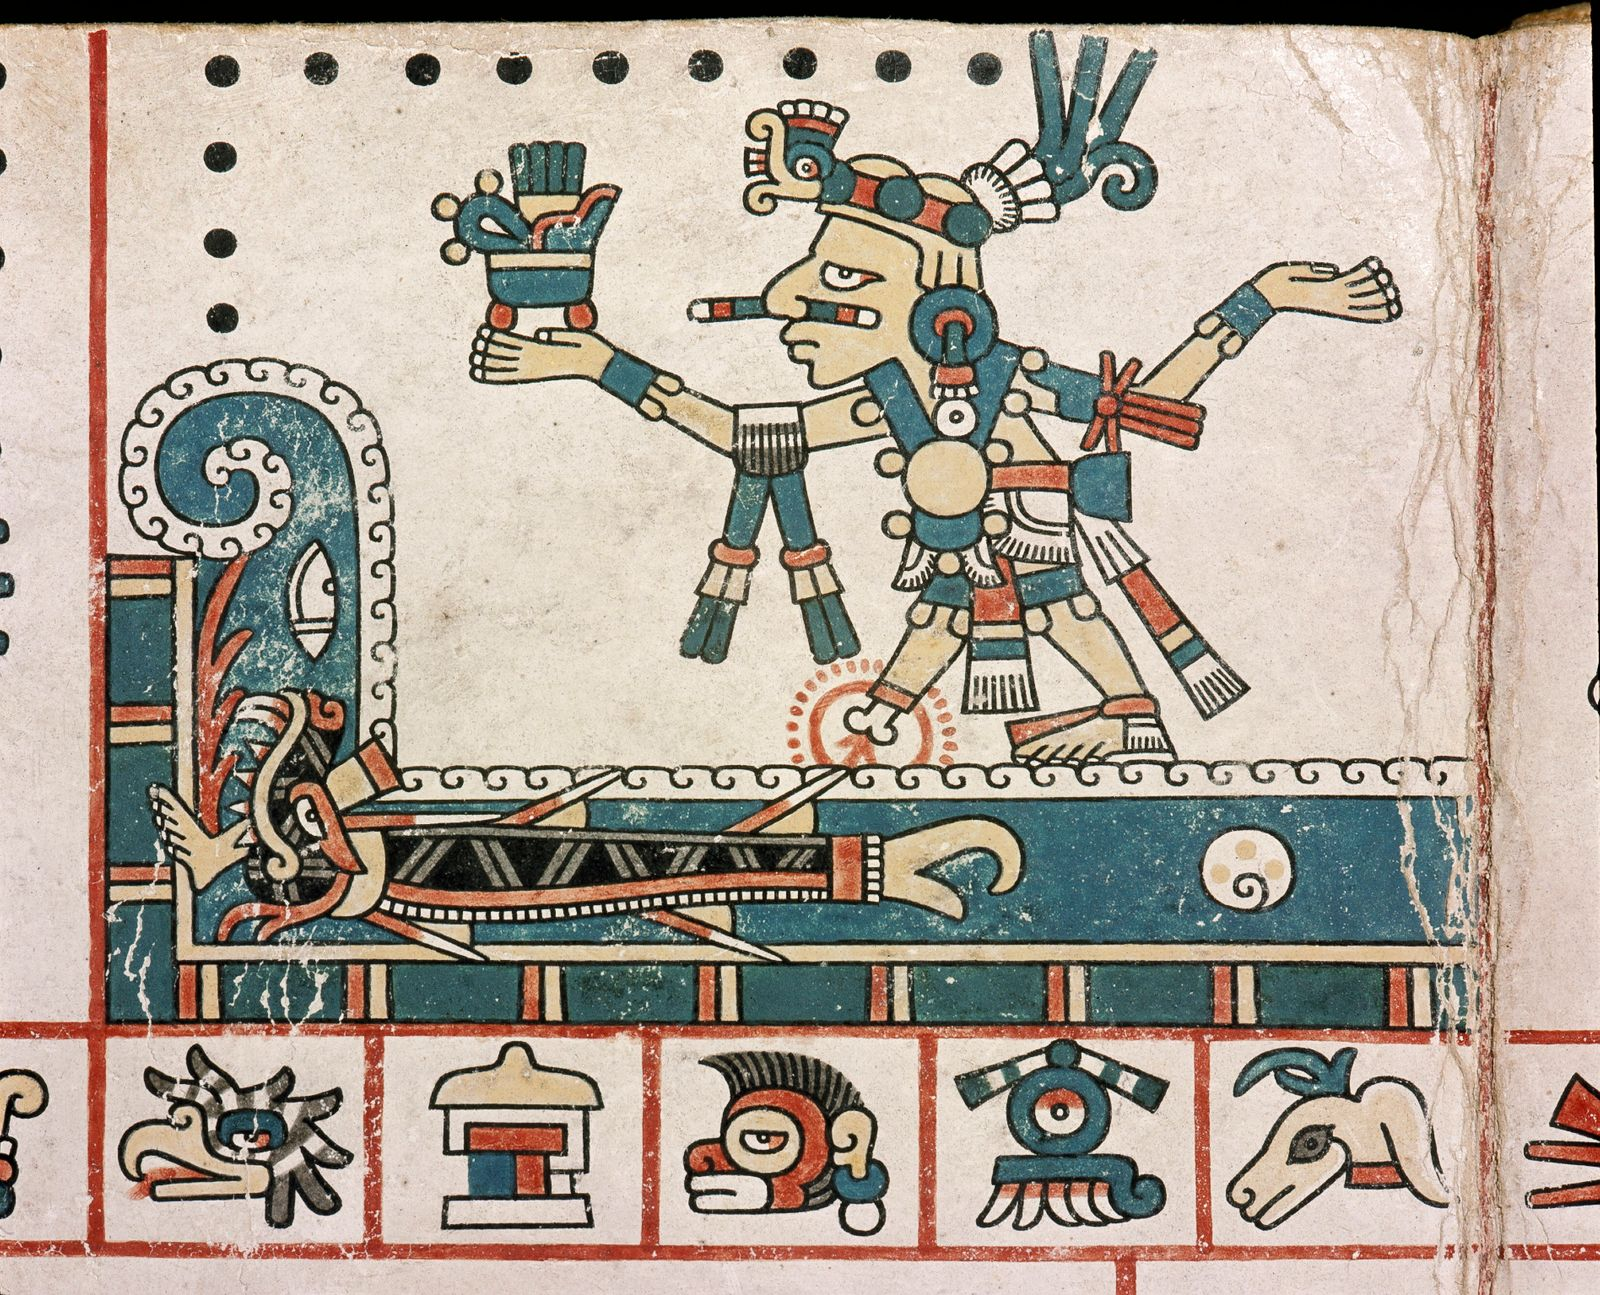 A panel from the Codex Fejervary Mayer shows how Tezcatlipoca tempted the Earth Monster to the surface of the great waters by using his foot as bait